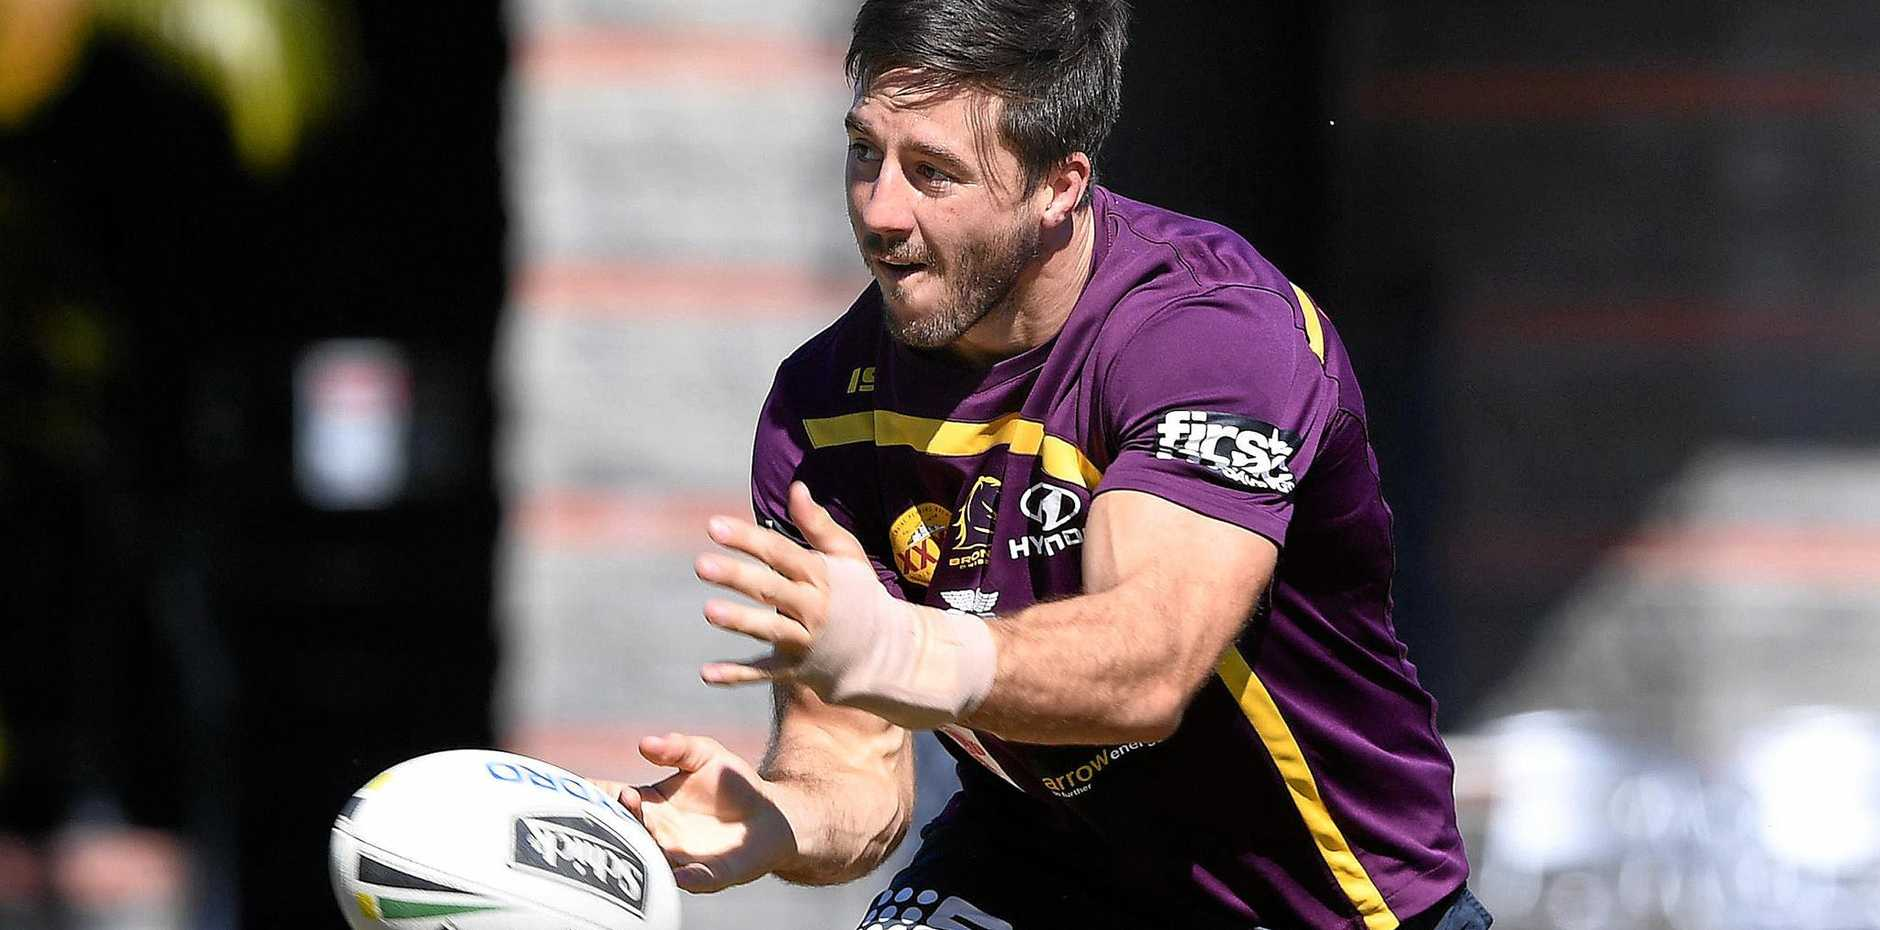 Ben Hunt - with his hand heavily bandaged - passes the ball during a Brisbane Broncos training session at Red Hill.